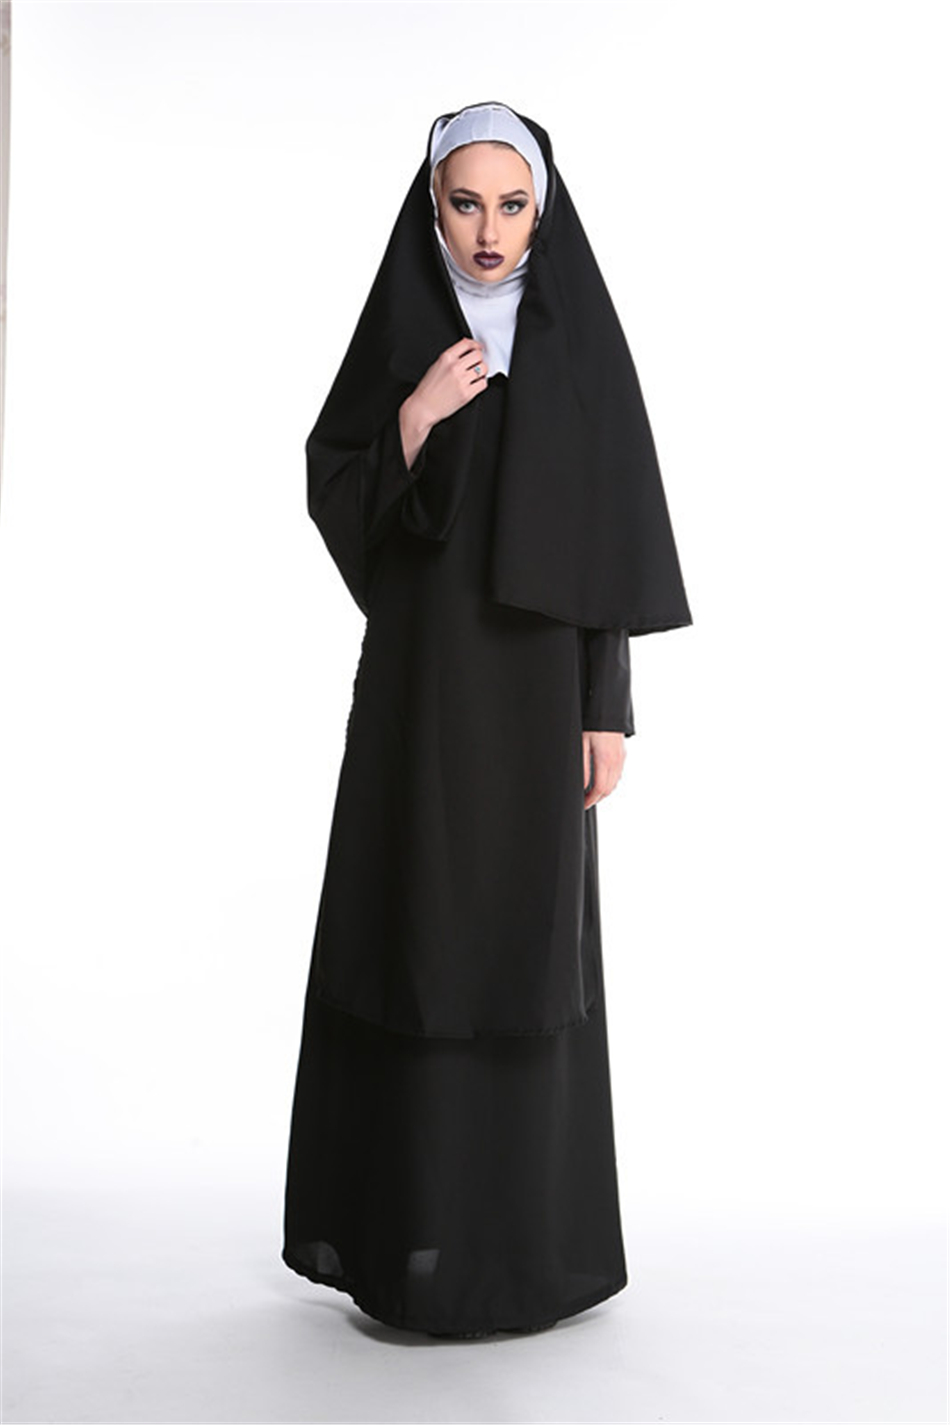 Medieval Cosplay Halloween Costumes for Women Priest Nun Missionary Costume Set 10